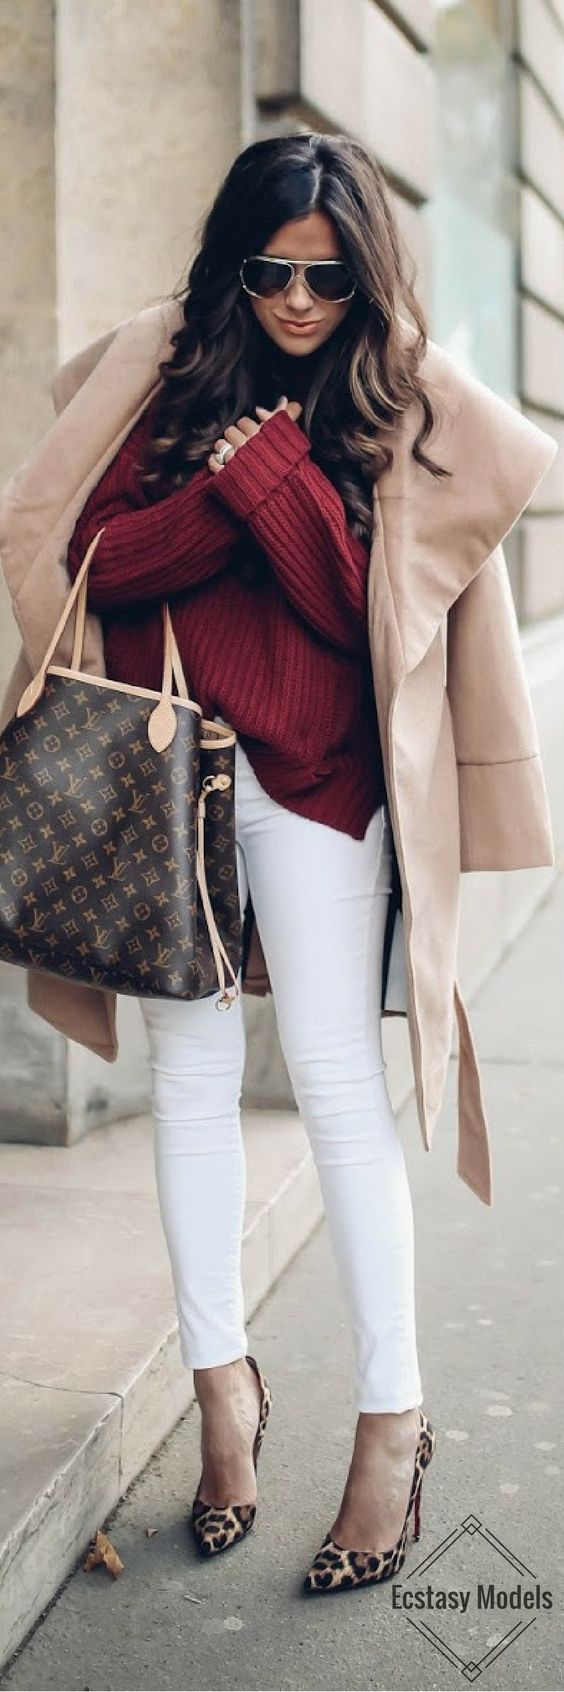 BORDEAUX & CAMEL FOR FALL